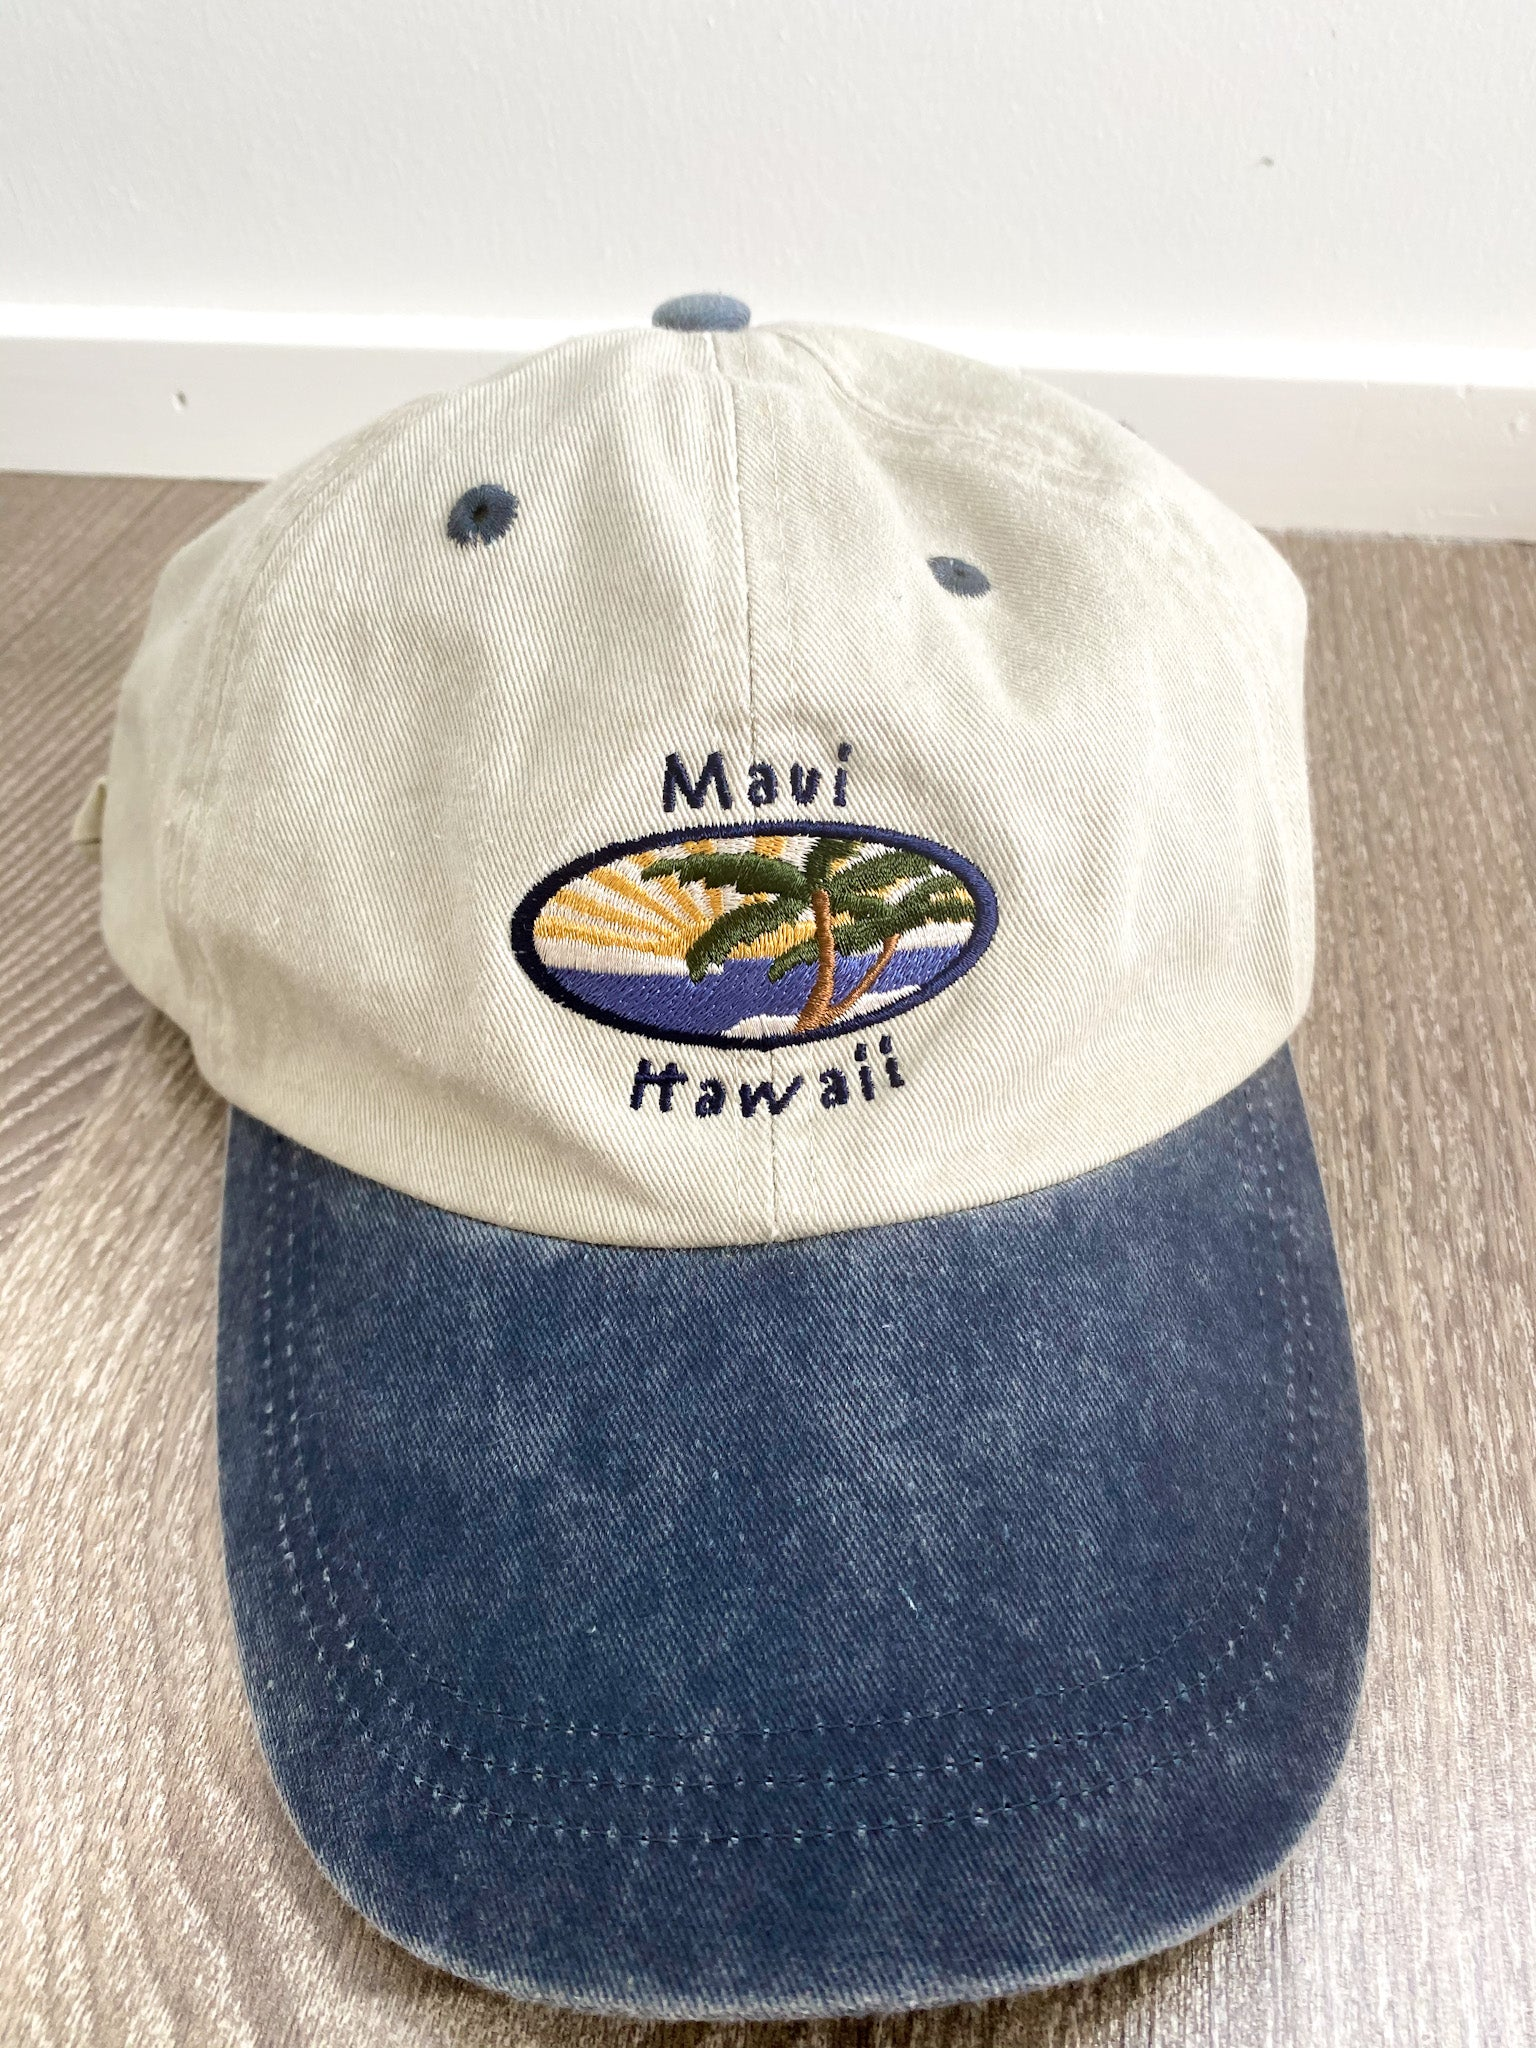 VINTAGE HAWAII CAP